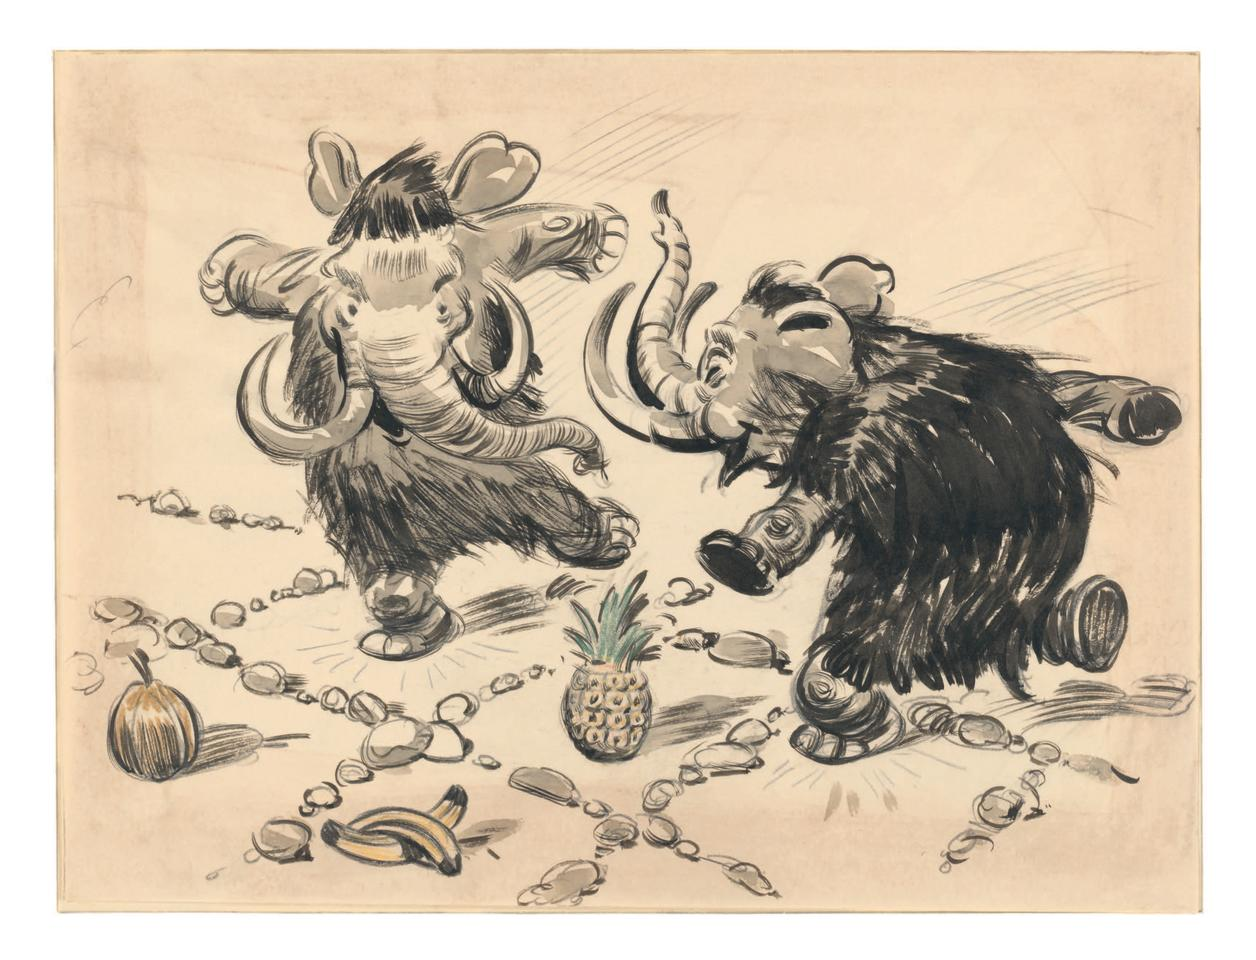 """<p>Ghez sets the scene: """"The very first outline of <i>Dumbo</i>, written by artists Joe Grant and Dick Huemer and submitted to Walt Disney in 1939, featured a total of 23 sequences. At the end of Sequence 4 the young Dumbo meets the mouse Timothy and Timothy is surprised to find out that Dumbo is not afraid of him, which leads to Sequence 5, 'The Mouse's Tale.'""""<br />(Credit: James Bodrero/Disney/Chronicle Books) </p>"""